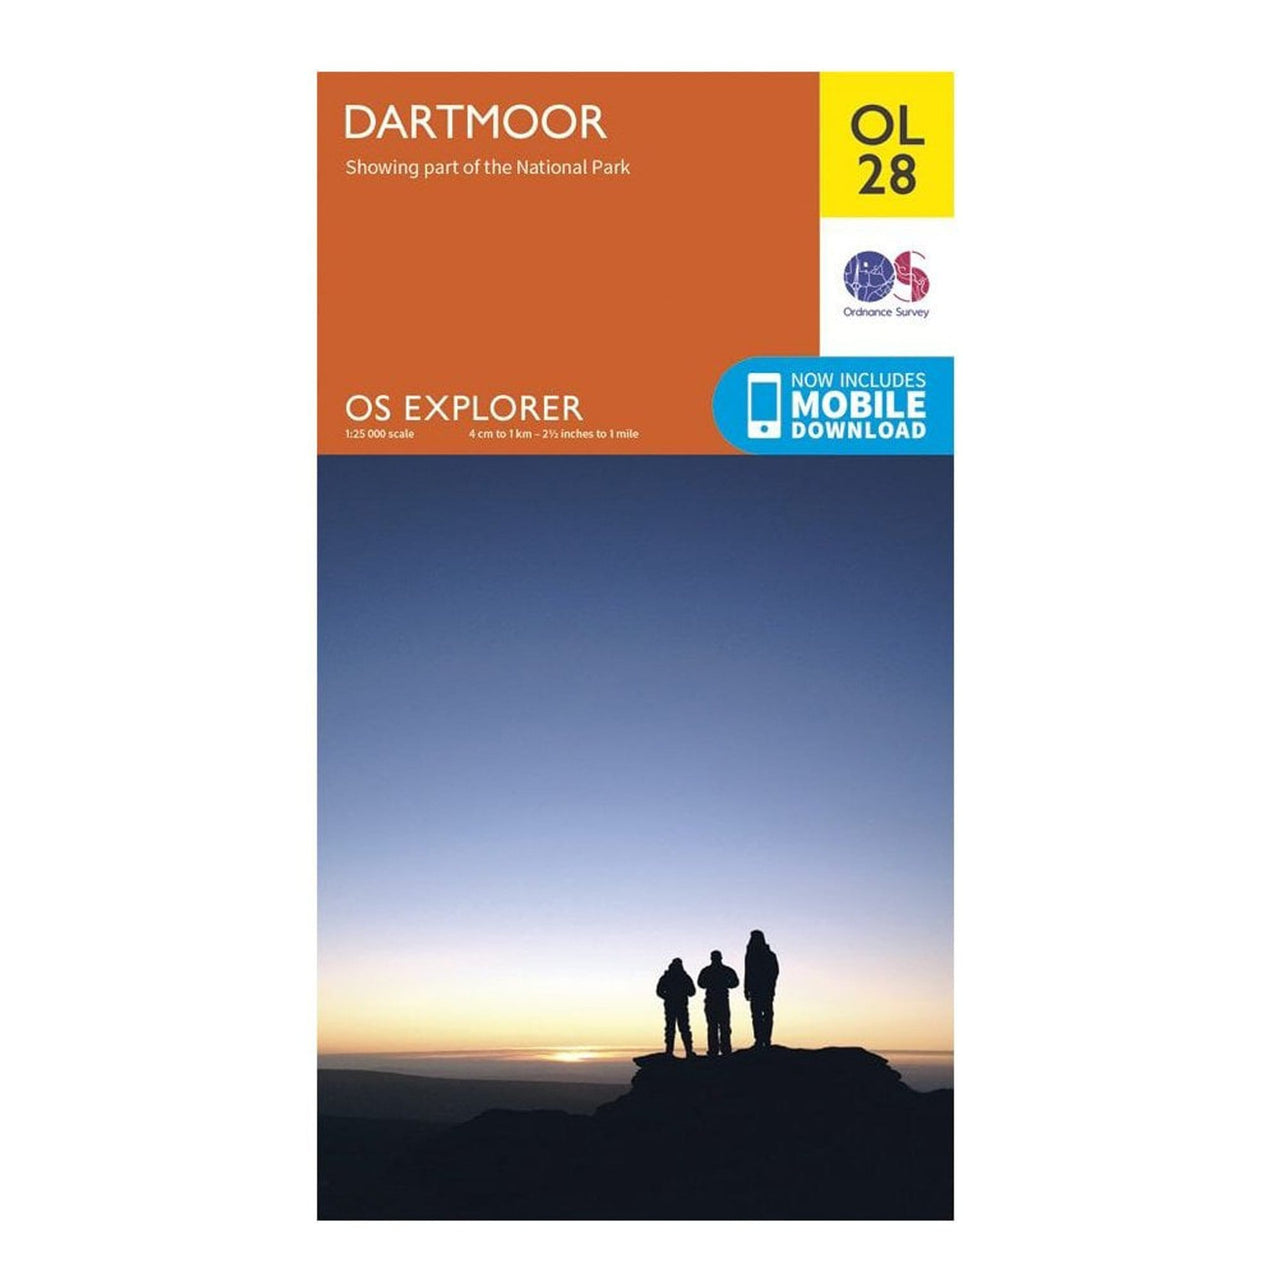 OS Explorer Maps: Dartmoor